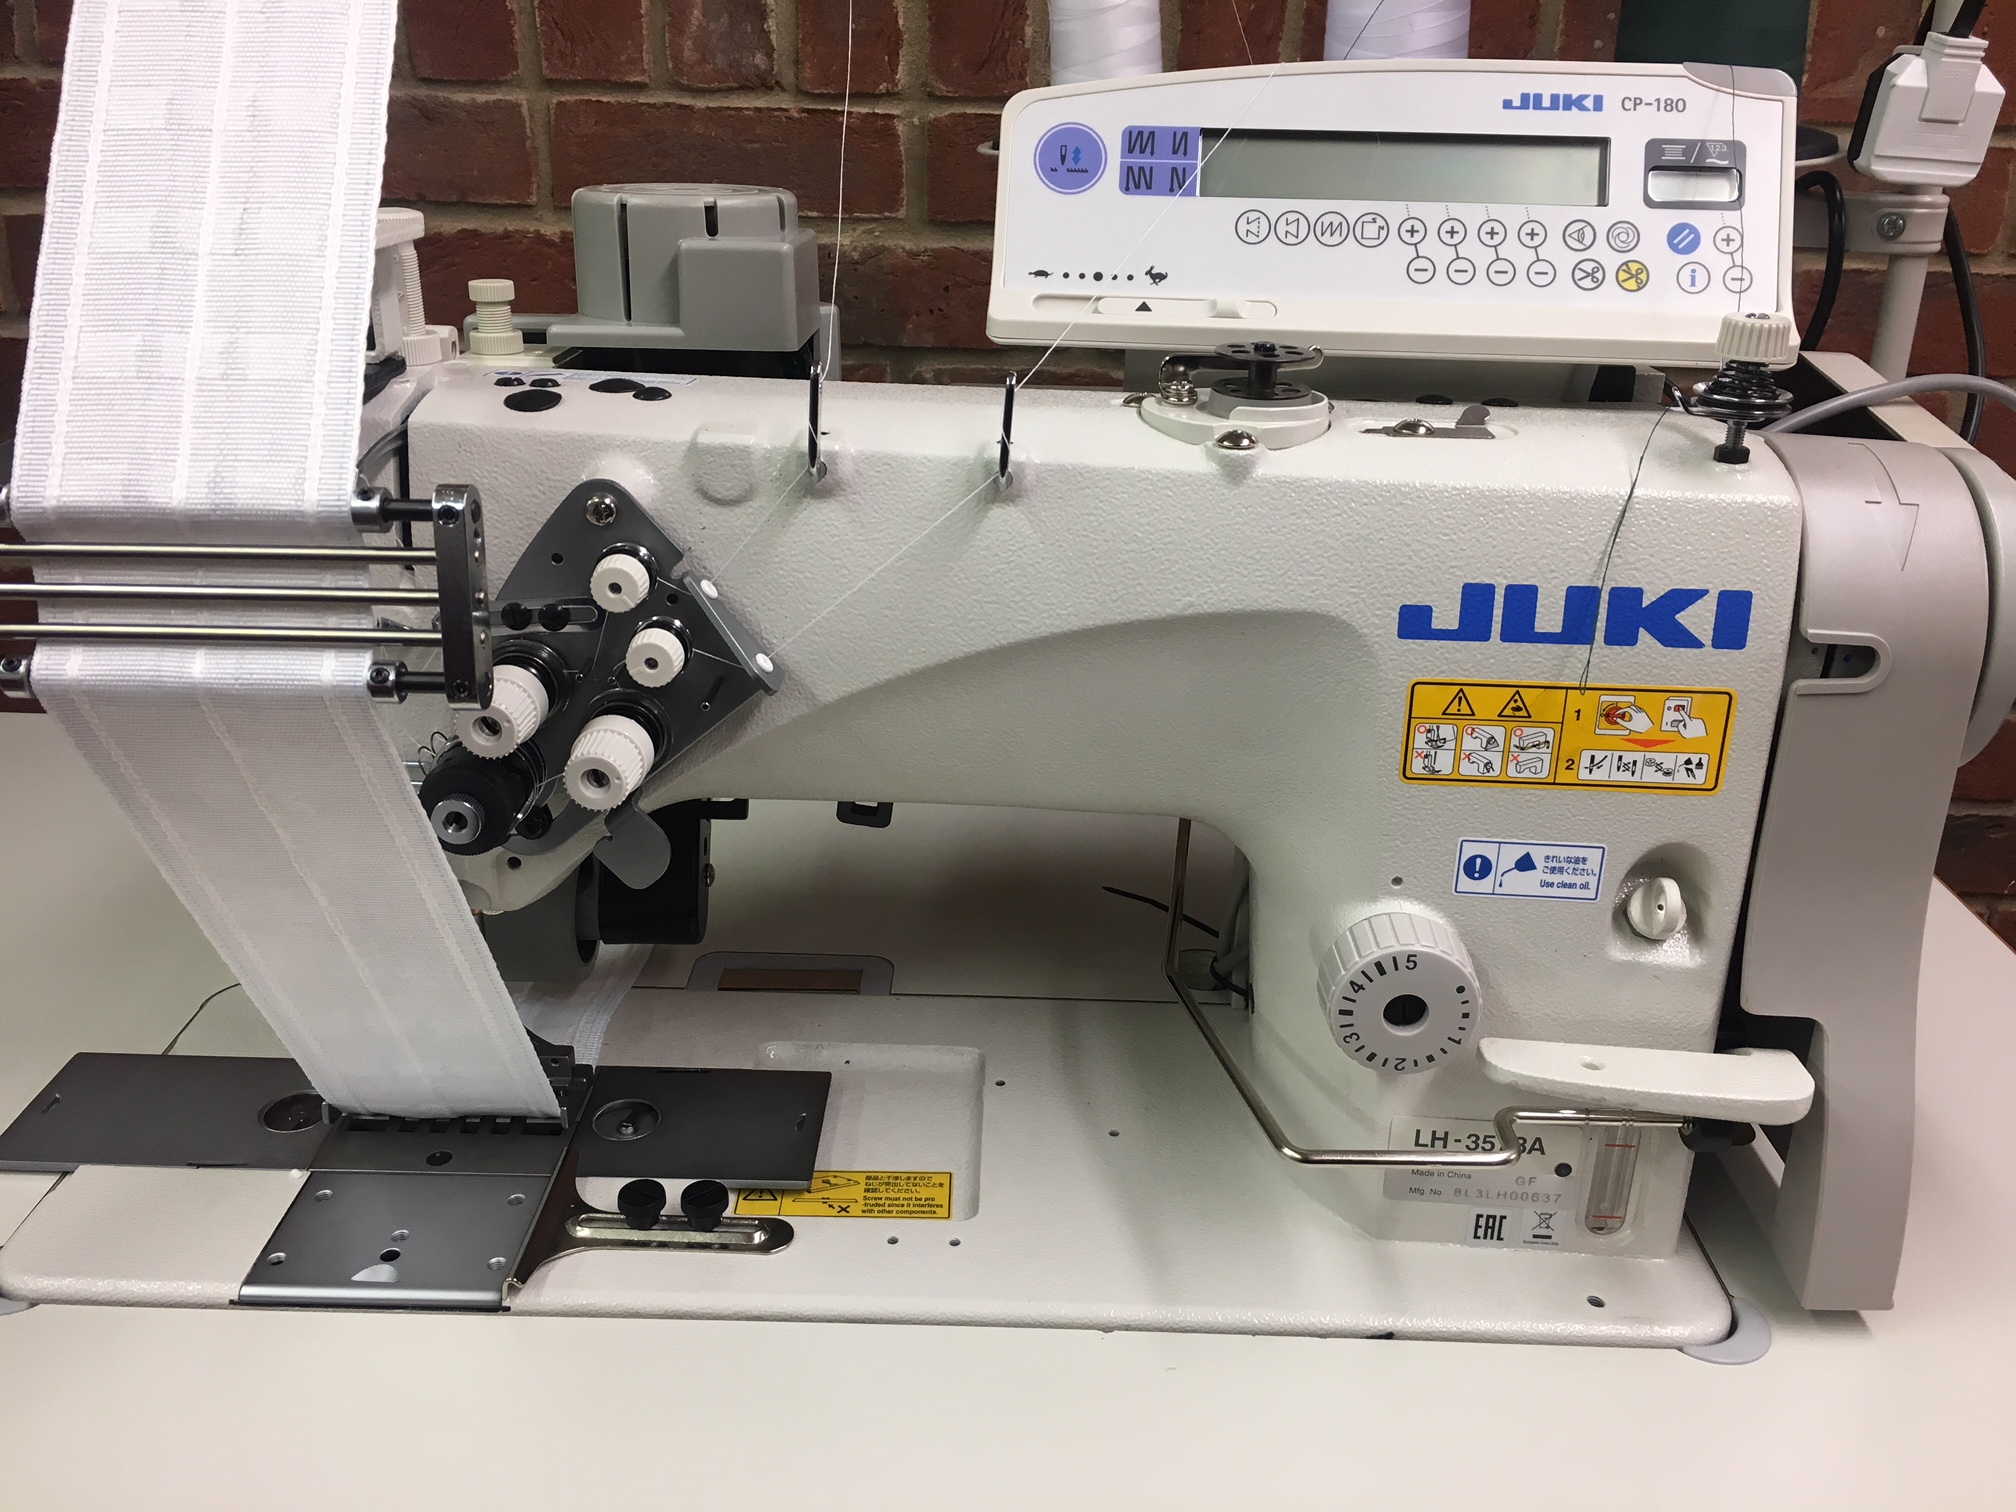 Juki LH-3578A 65mm for attaching header tape